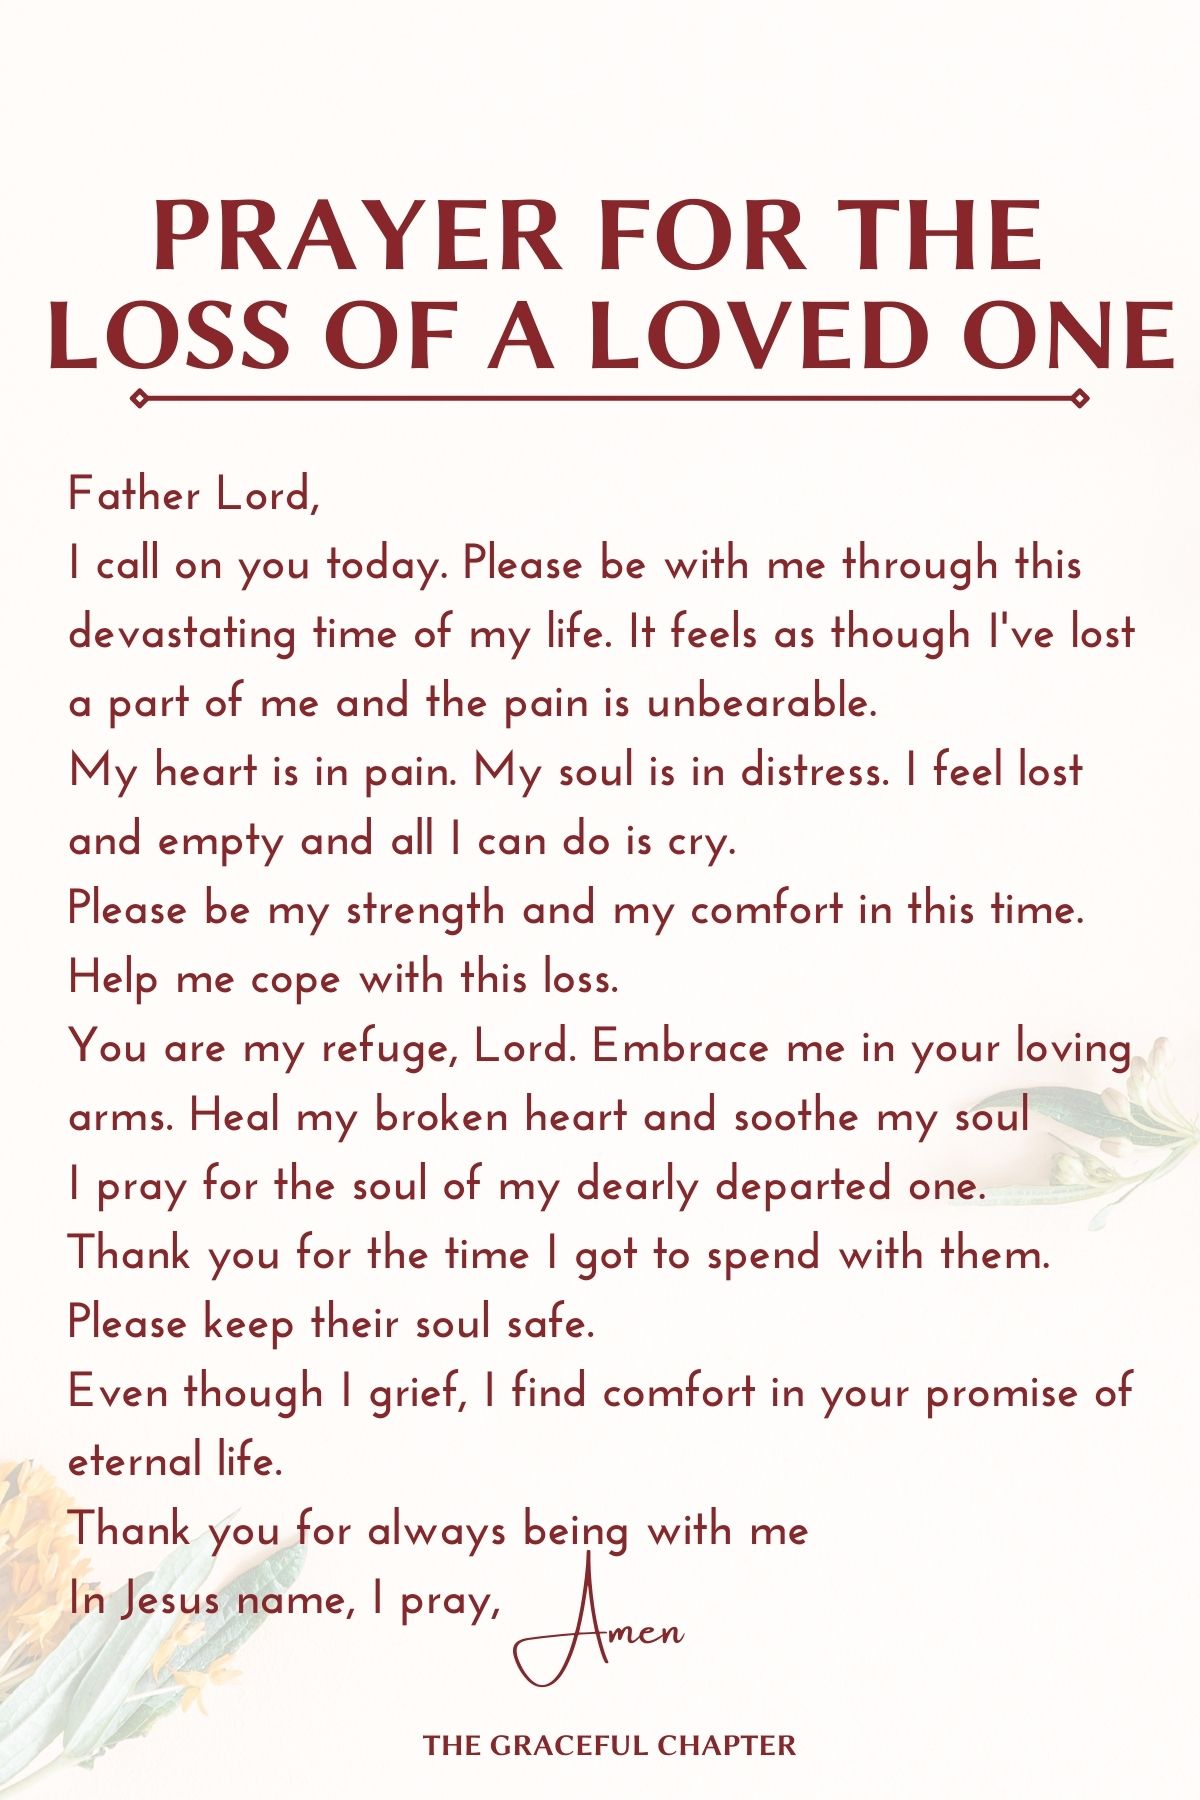 Prayer for the loss of a loved one